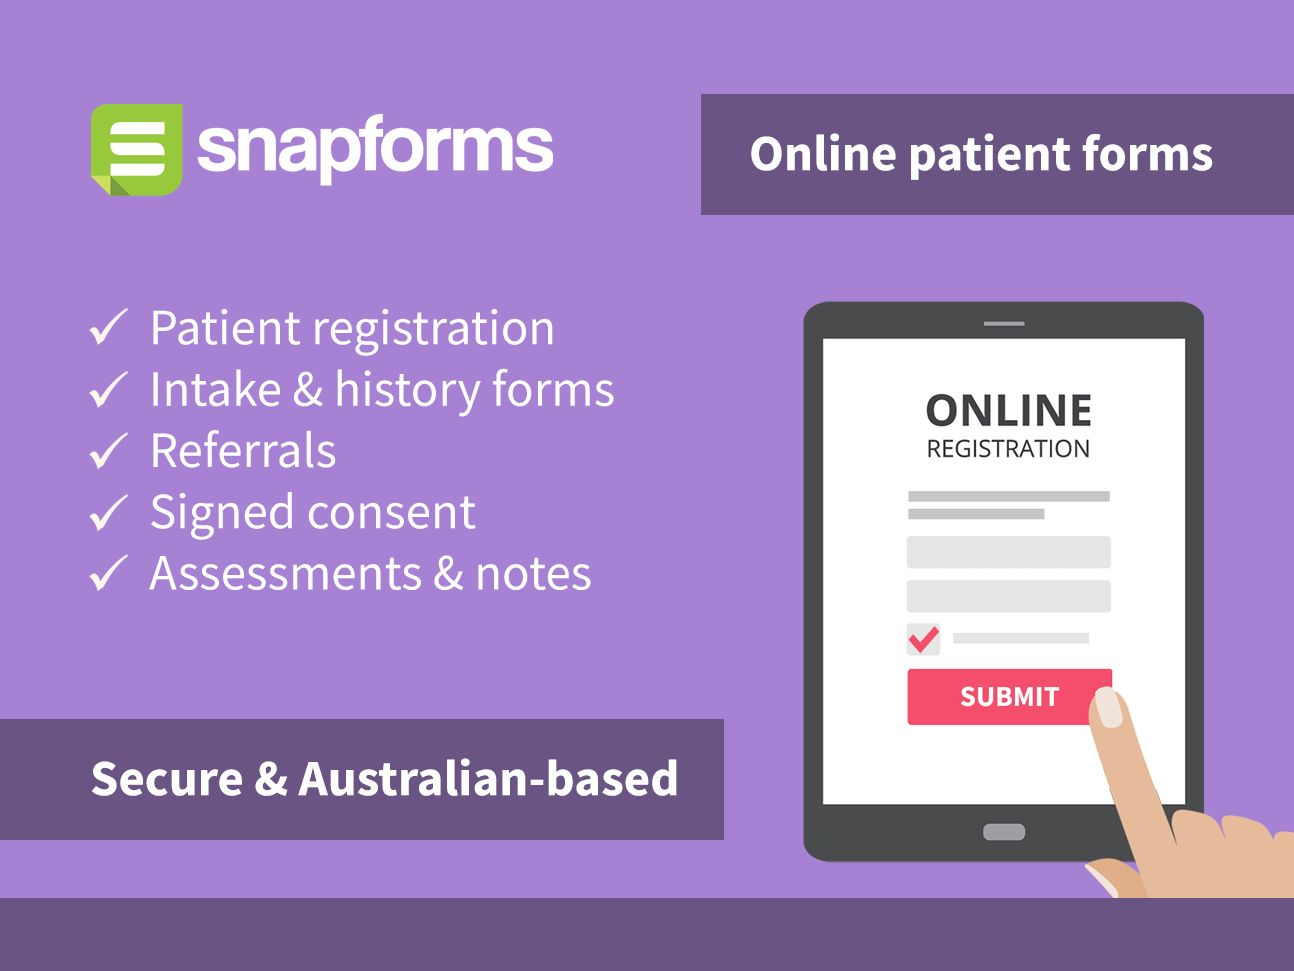 Snapforms, patient registration, intake & history, referrals, signed consent, assessment and notes